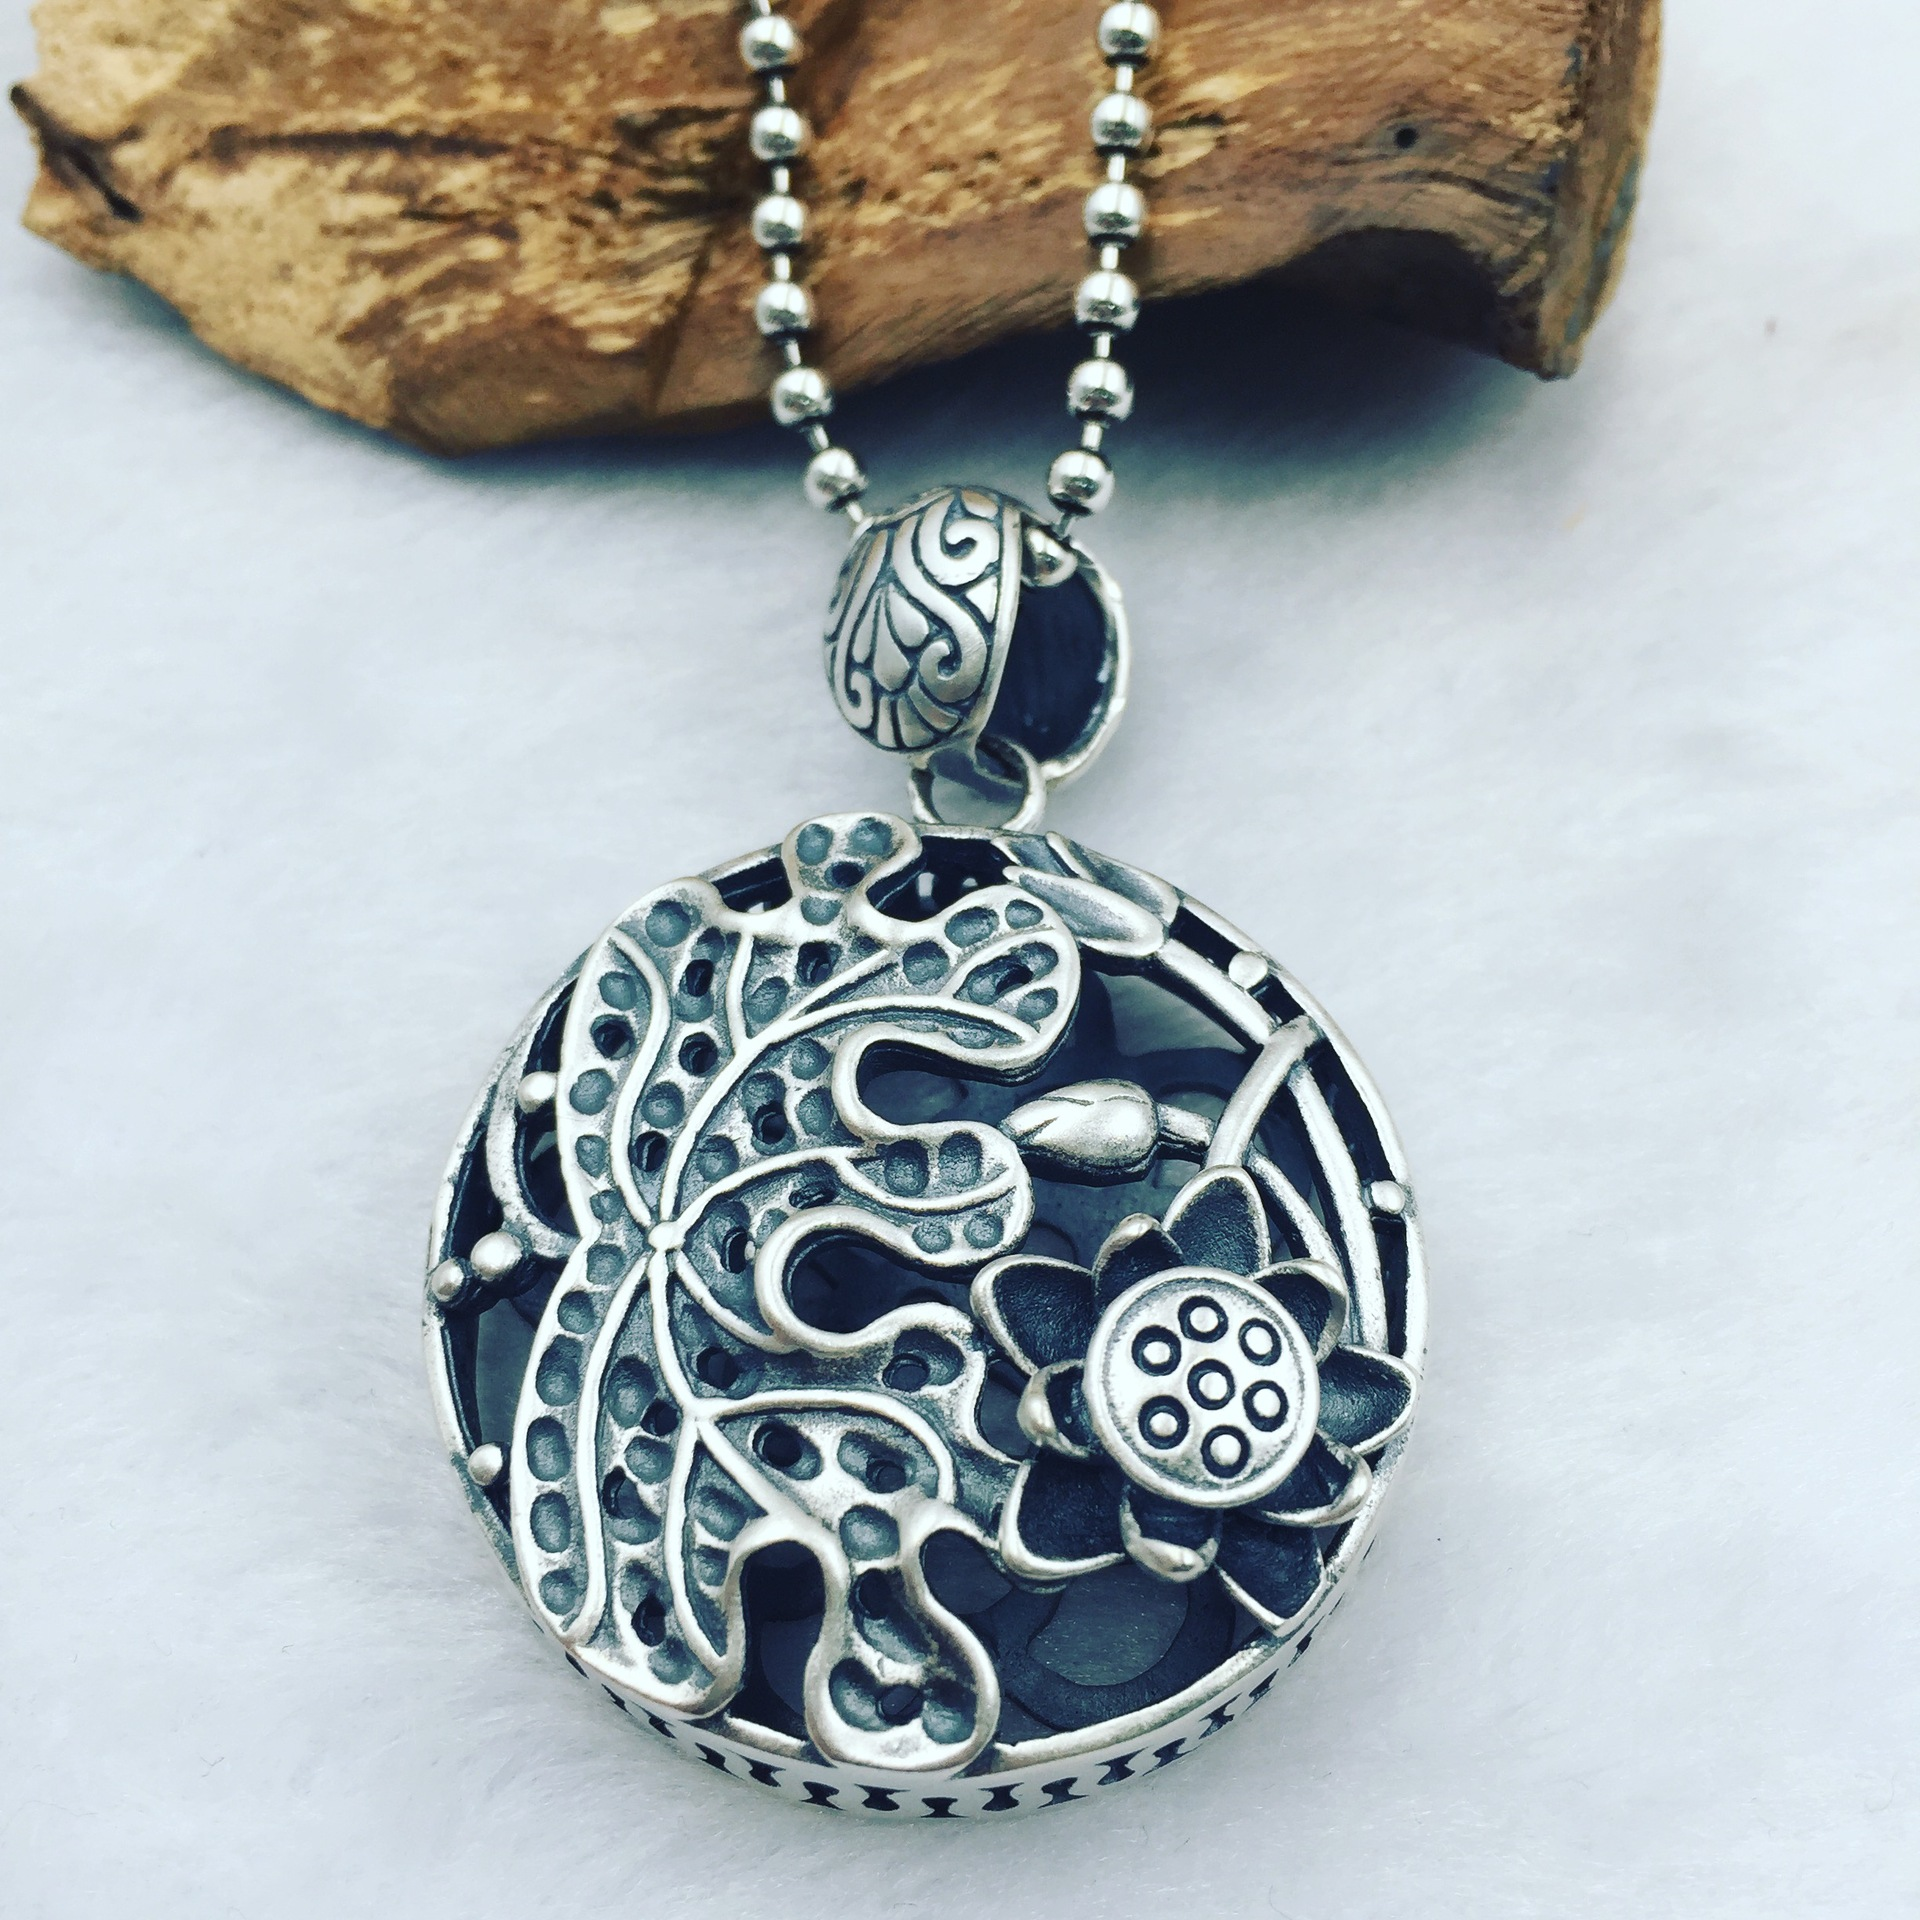 The ancient Thai Folk Style Sterling Silver Genuine S925 silver Lotus Flower Silver Pendant pendant sweater chainThe ancient Thai Folk Style Sterling Silver Genuine S925 silver Lotus Flower Silver Pendant pendant sweater chain